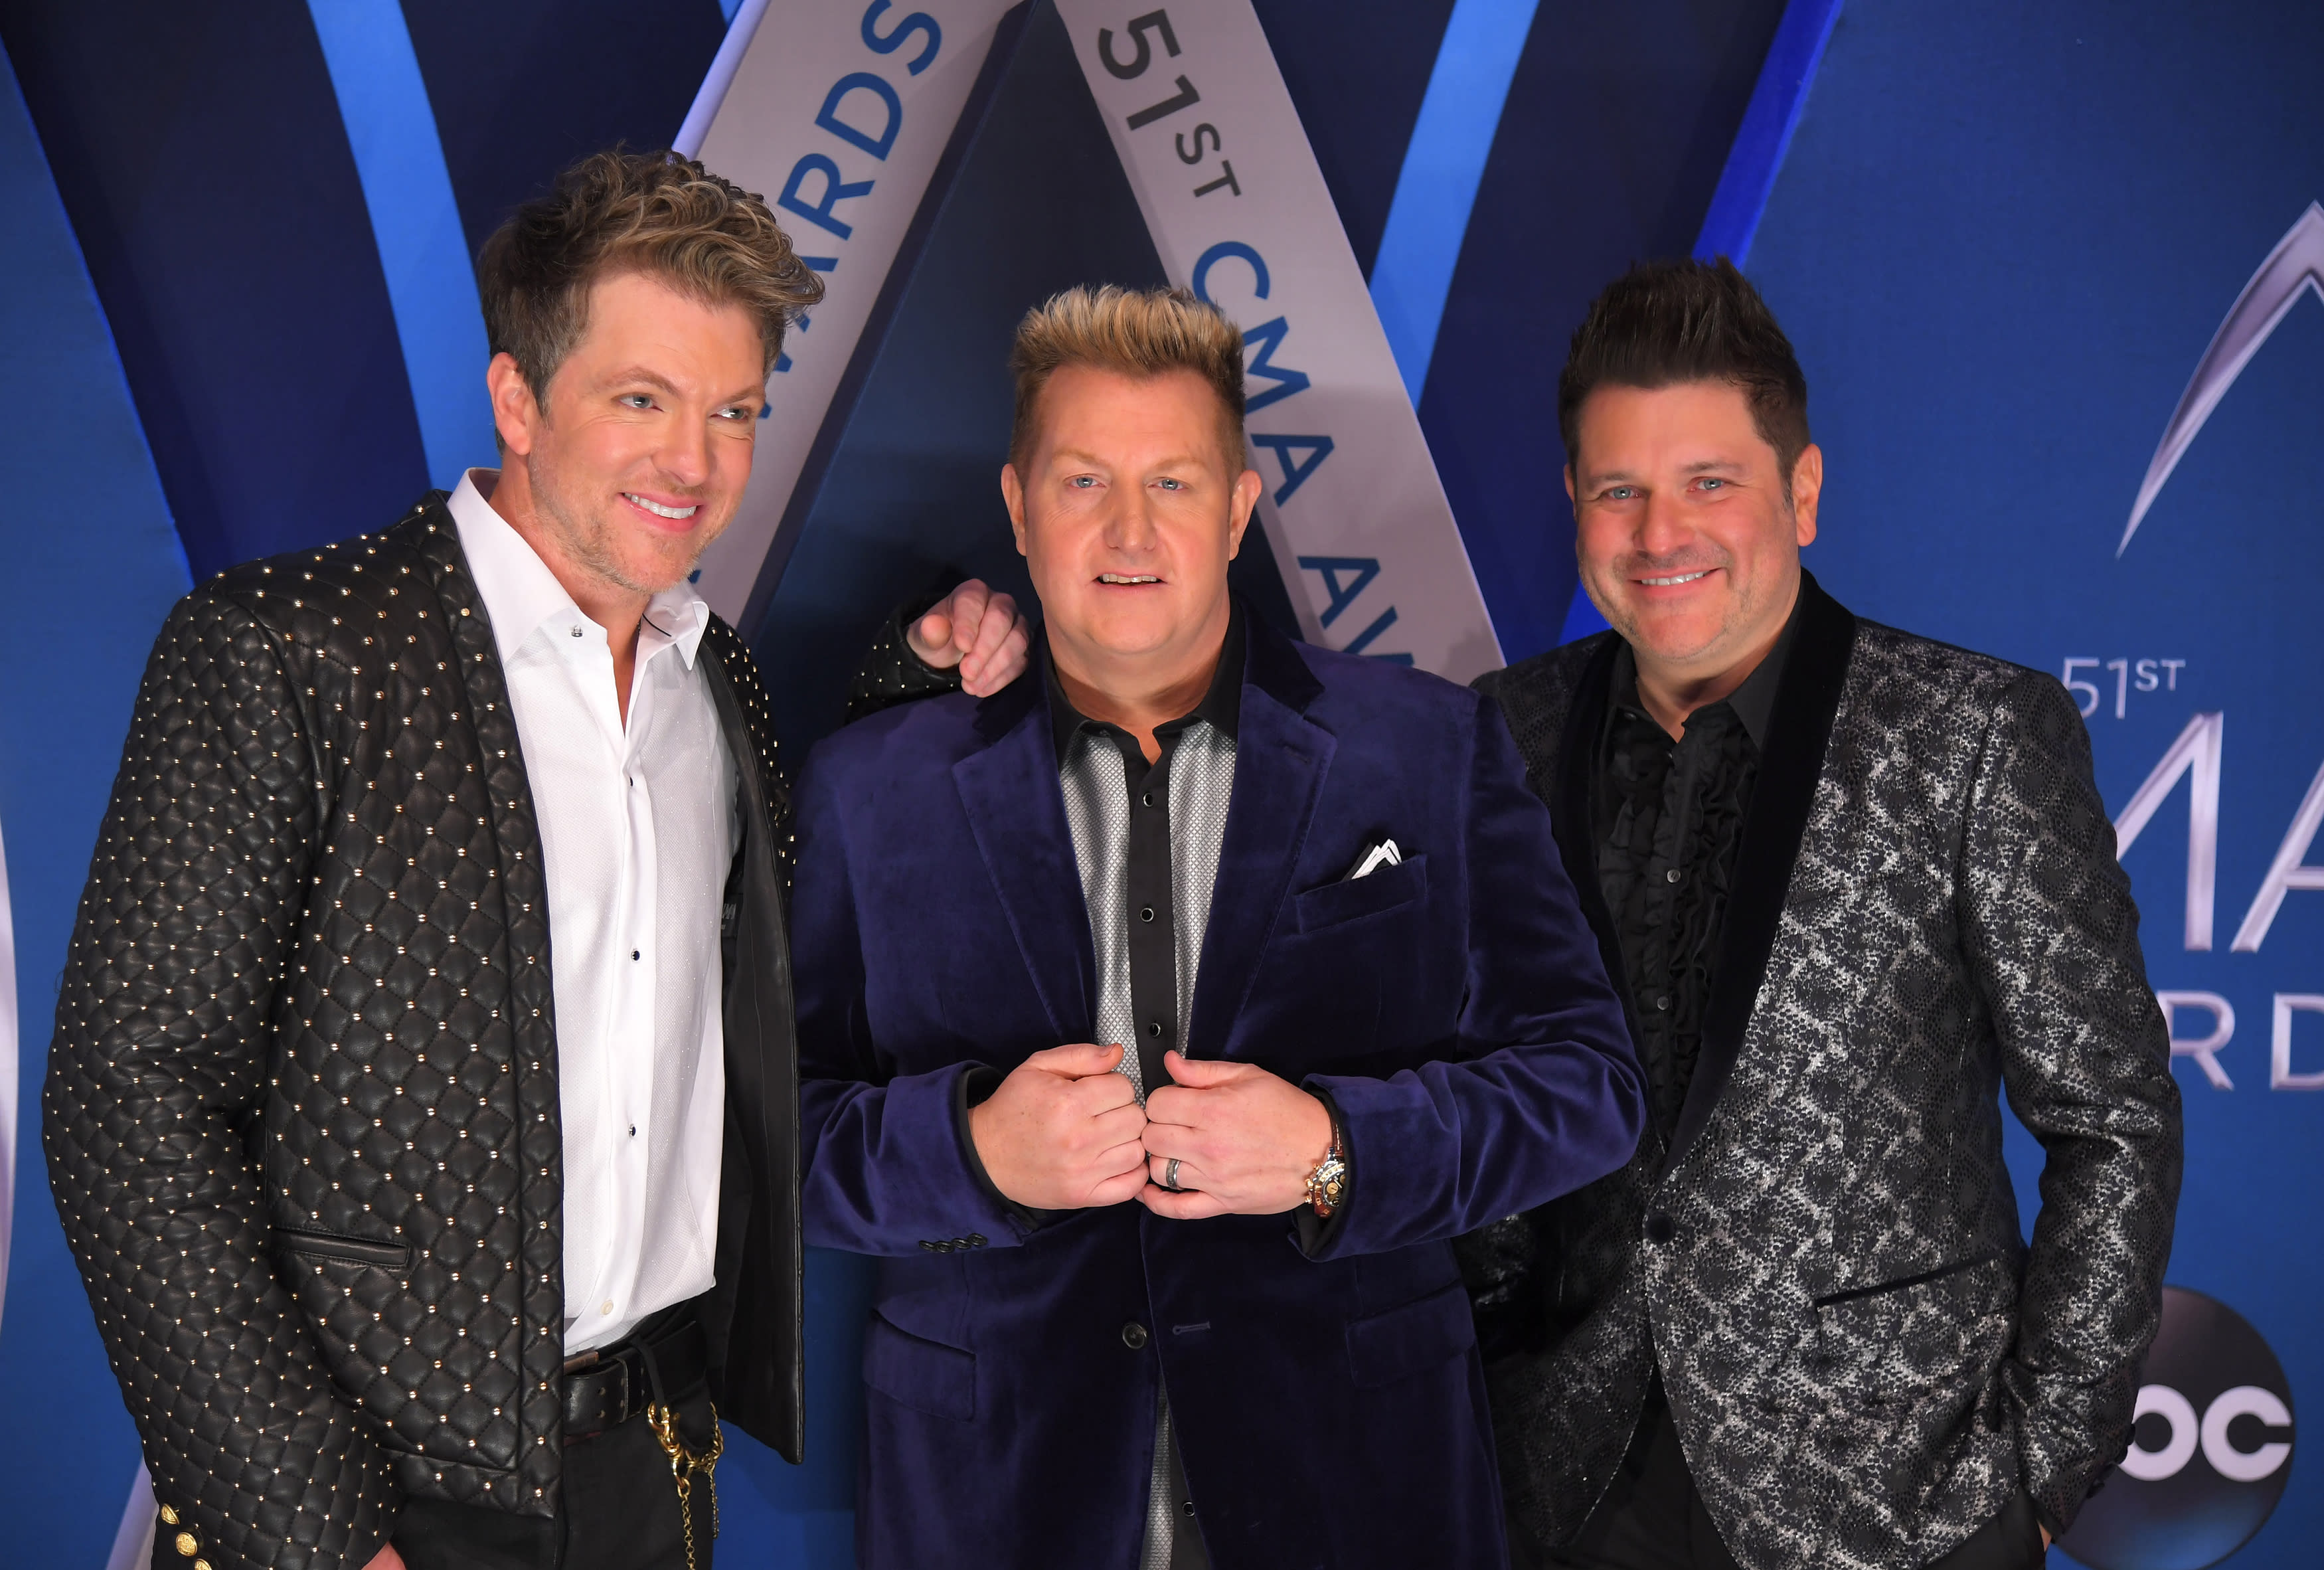 The four-time Grammy-nominated country group Rascal Flatts is embarking on a farewell tour before splitting up after 20 years. (Photo: REUTERS/Harrison Mcclary)